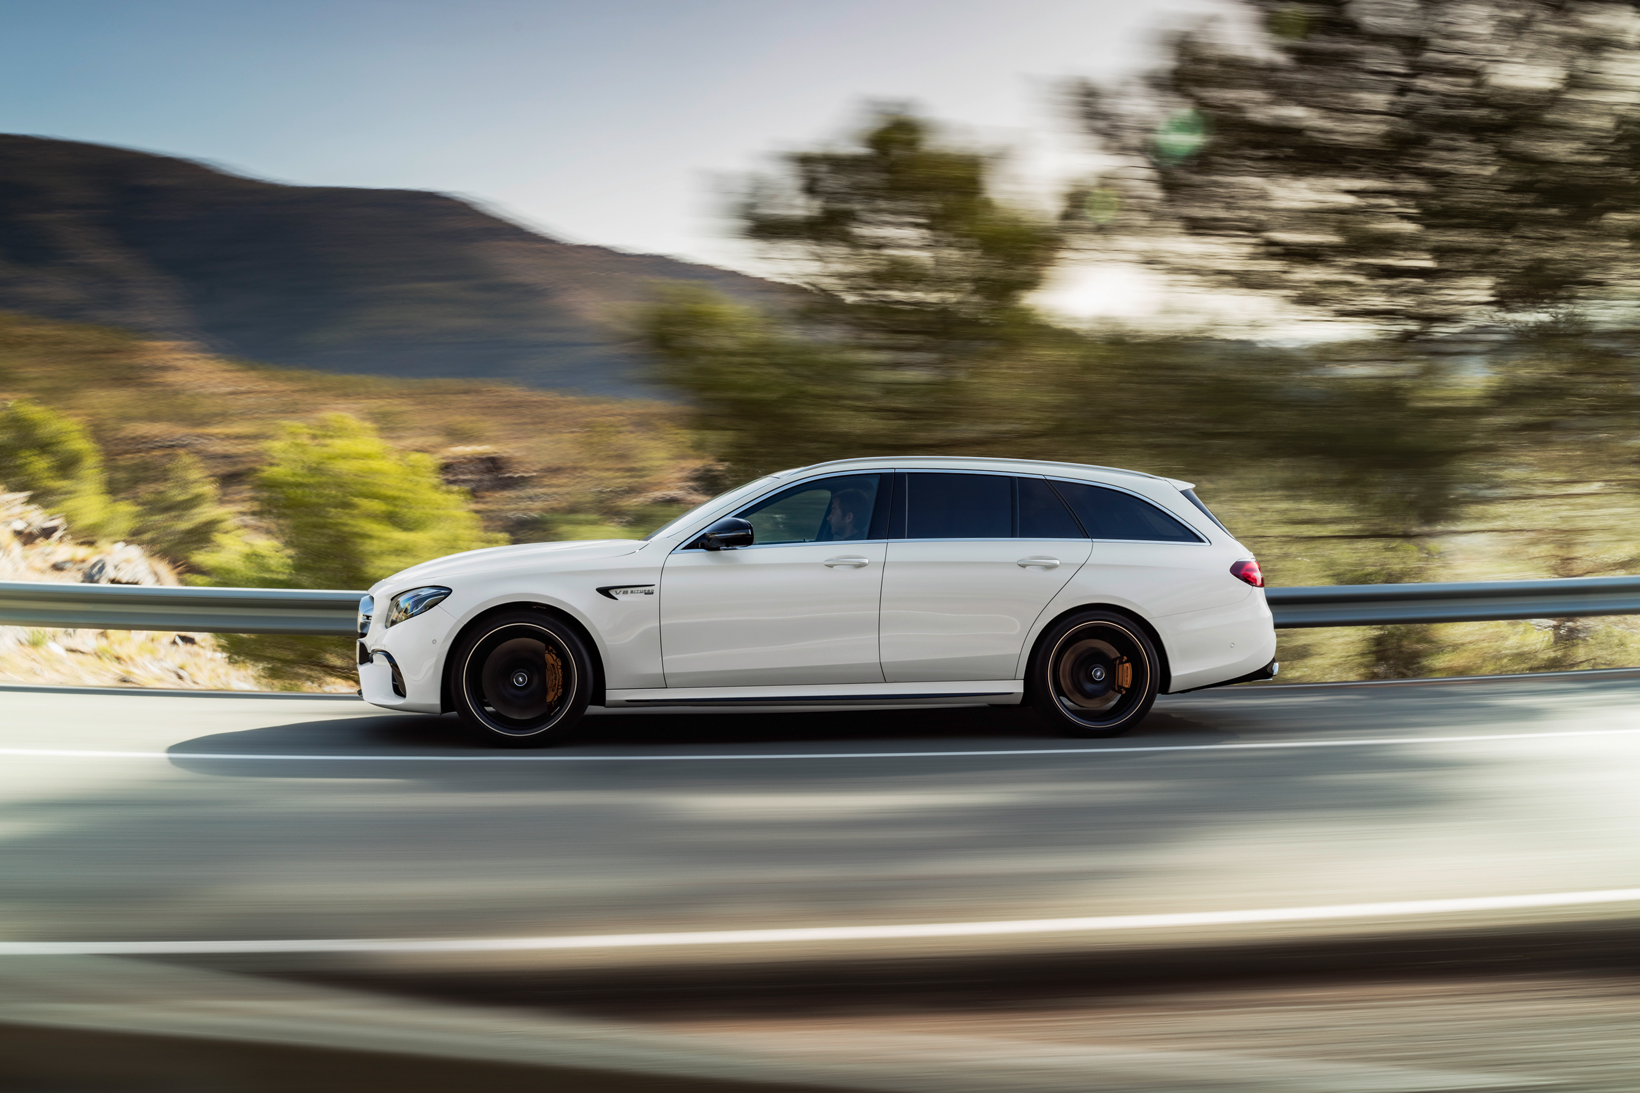 mercedes amg e63 s wagon will hit stateside roads hypebeast. Black Bedroom Furniture Sets. Home Design Ideas